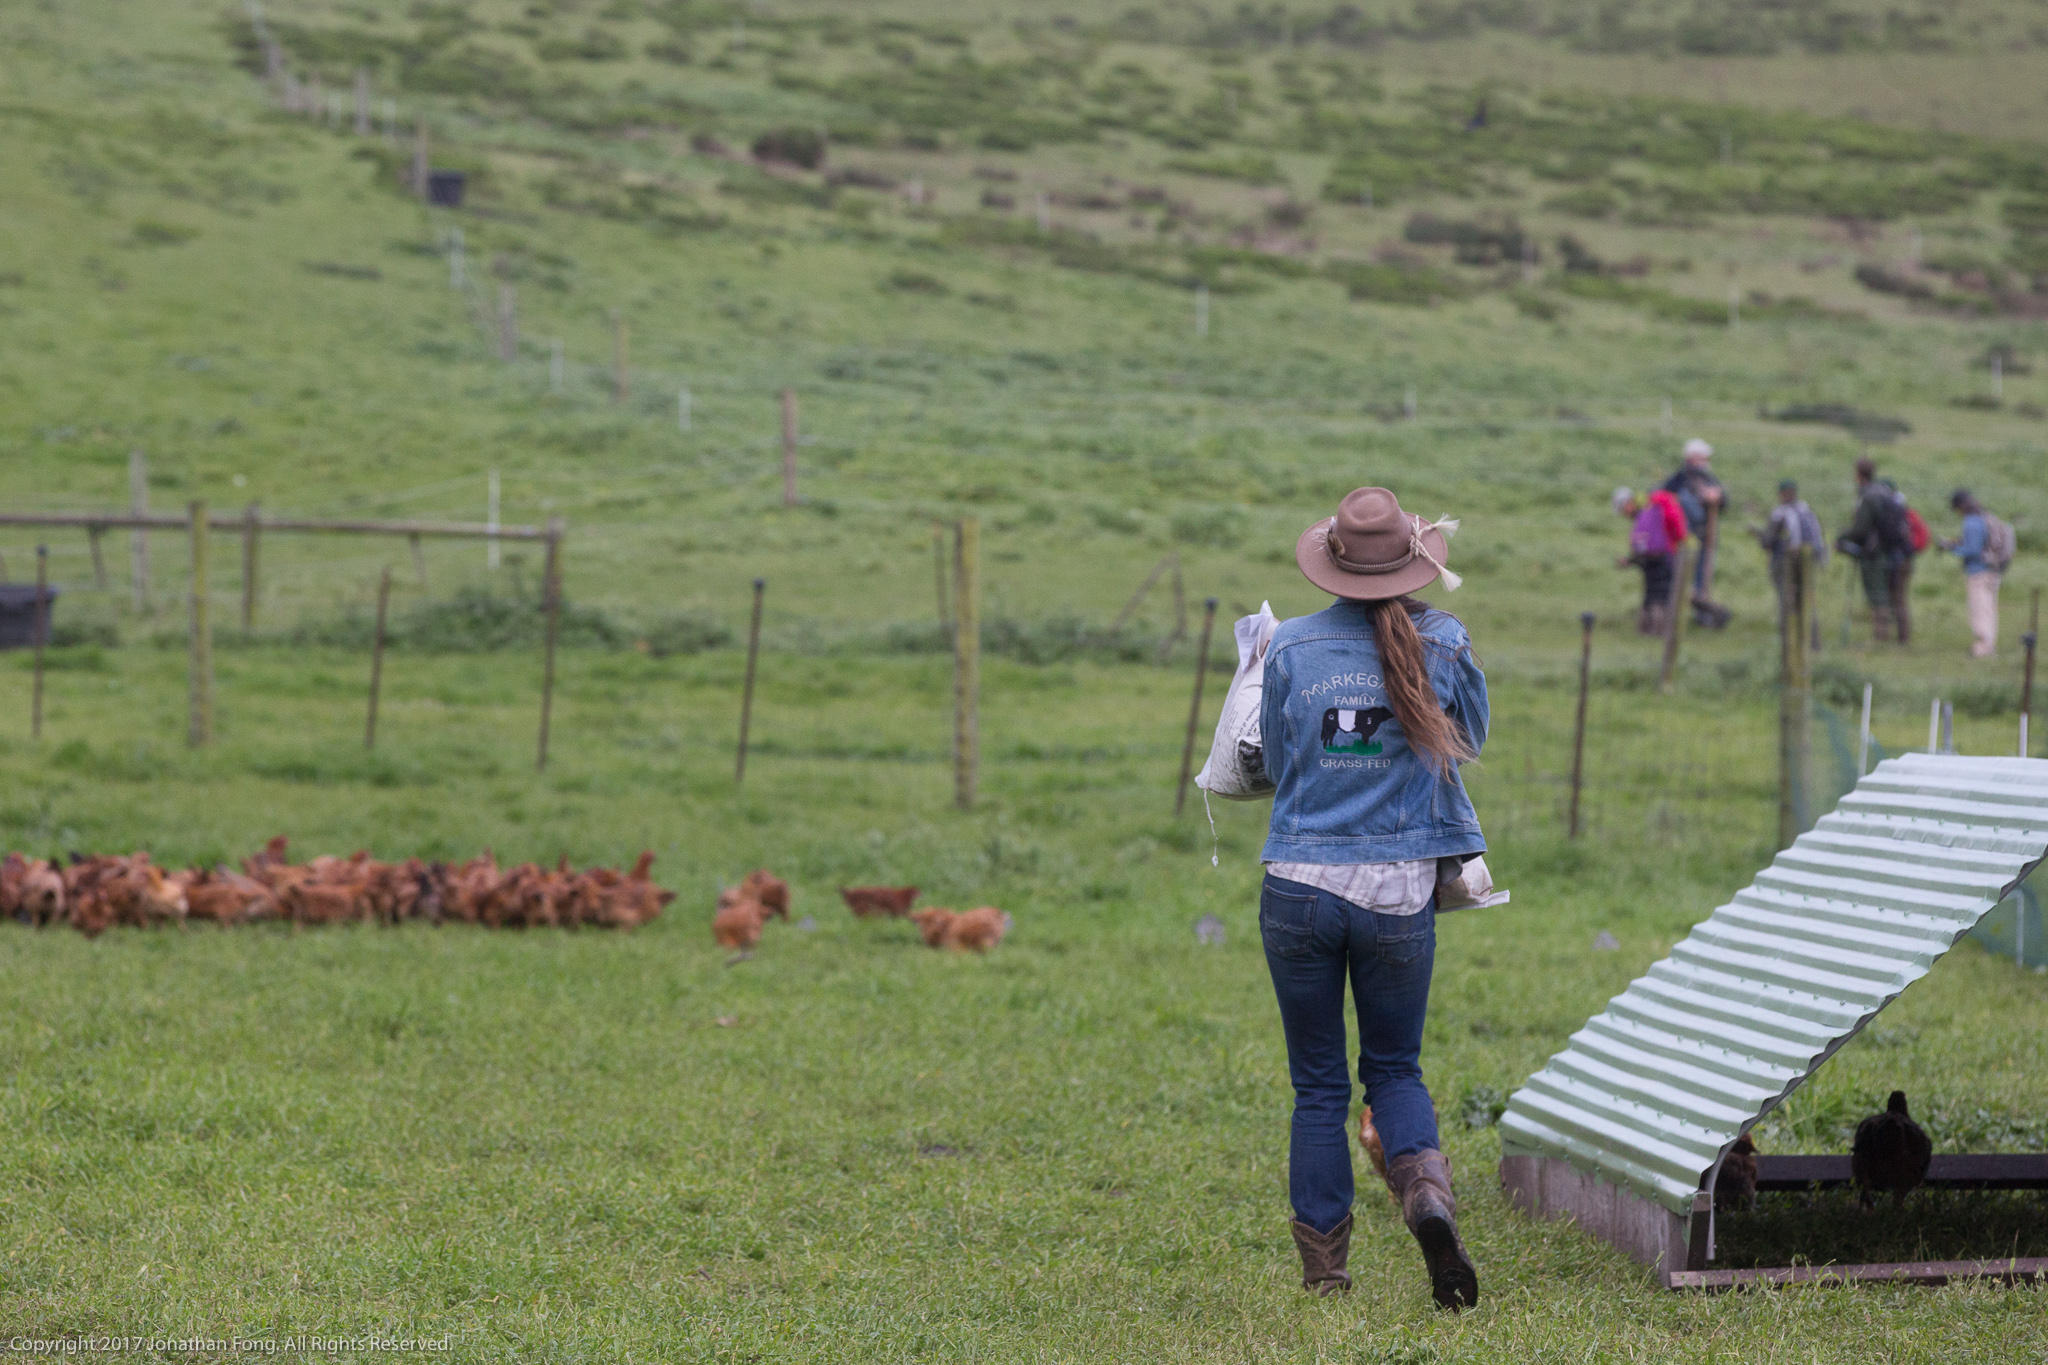 The Markegards run a diverse operation, supplementing their grass-fed cattle with milk cows, grassfed lamb, chickens and pigs. This diversity is key to achieving business viability and success, as are team members, like Sue here, who support Doniga and Erik with operations on the ranch.